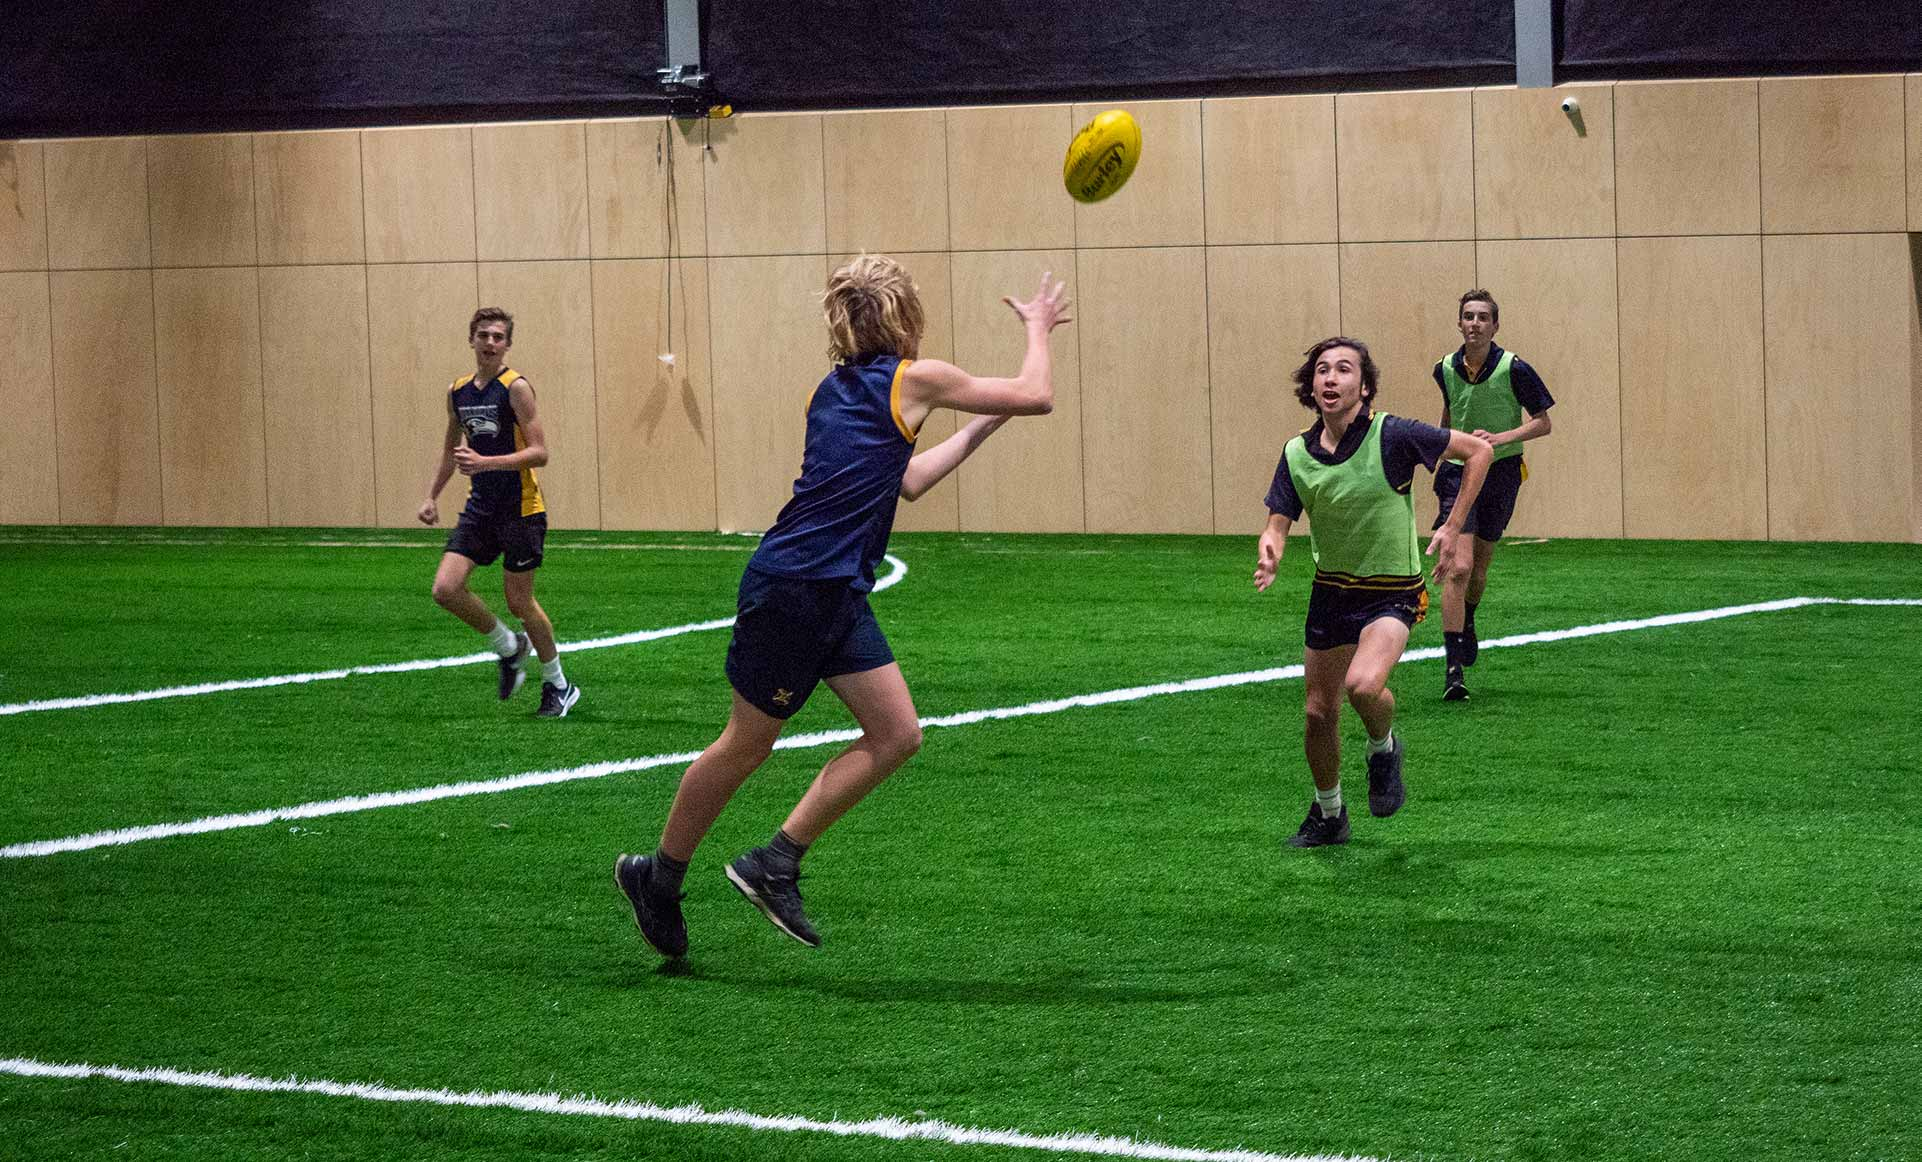 Kids playing footy at AFL Max indoor entertainment centre